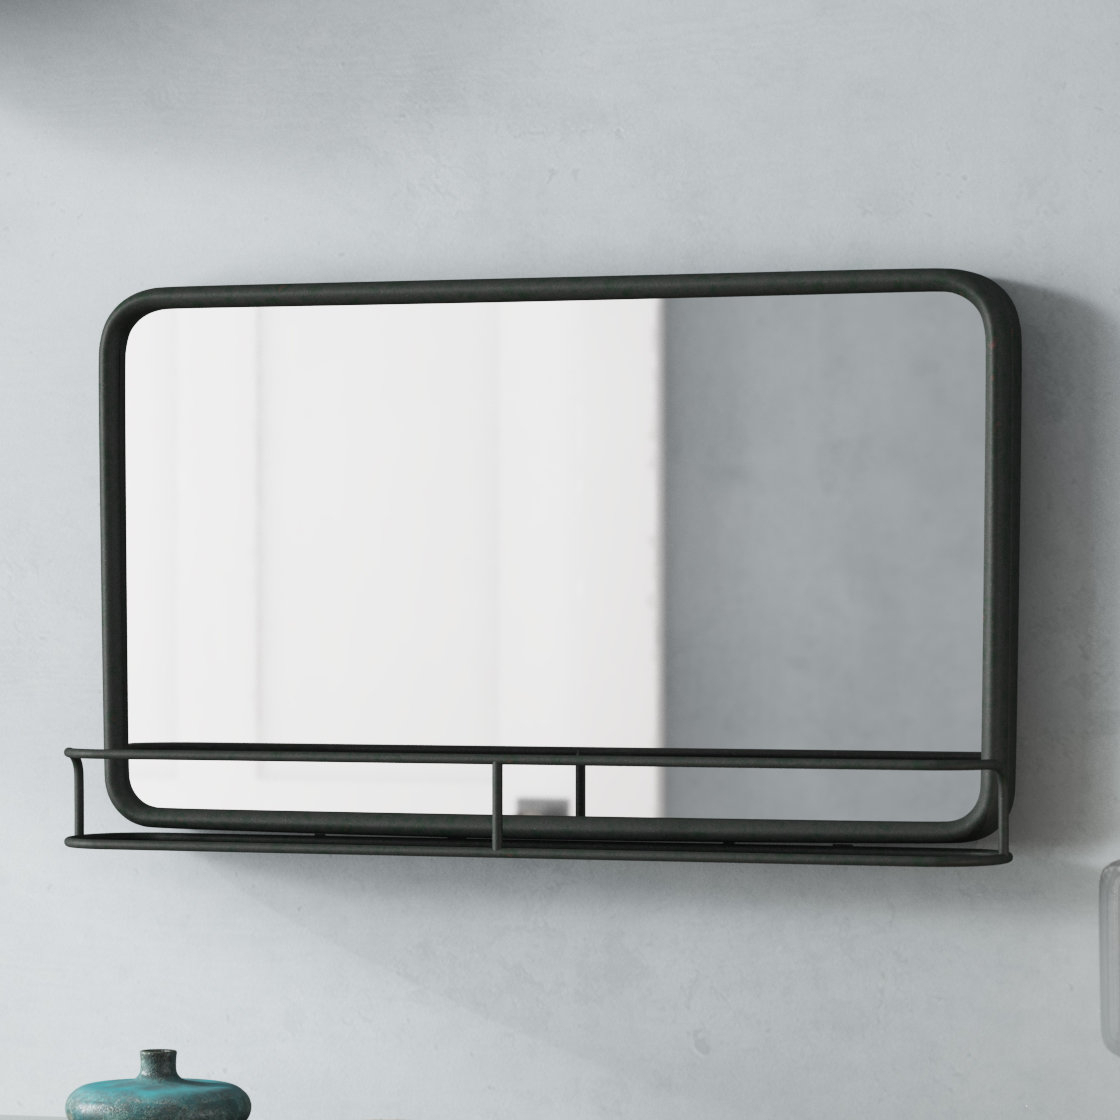 Mirrors With Shelves & Drawers You'll Love In 2019 | Wayfair Intended For Hallas Wall Organizer Mirrors (Image 12 of 20)